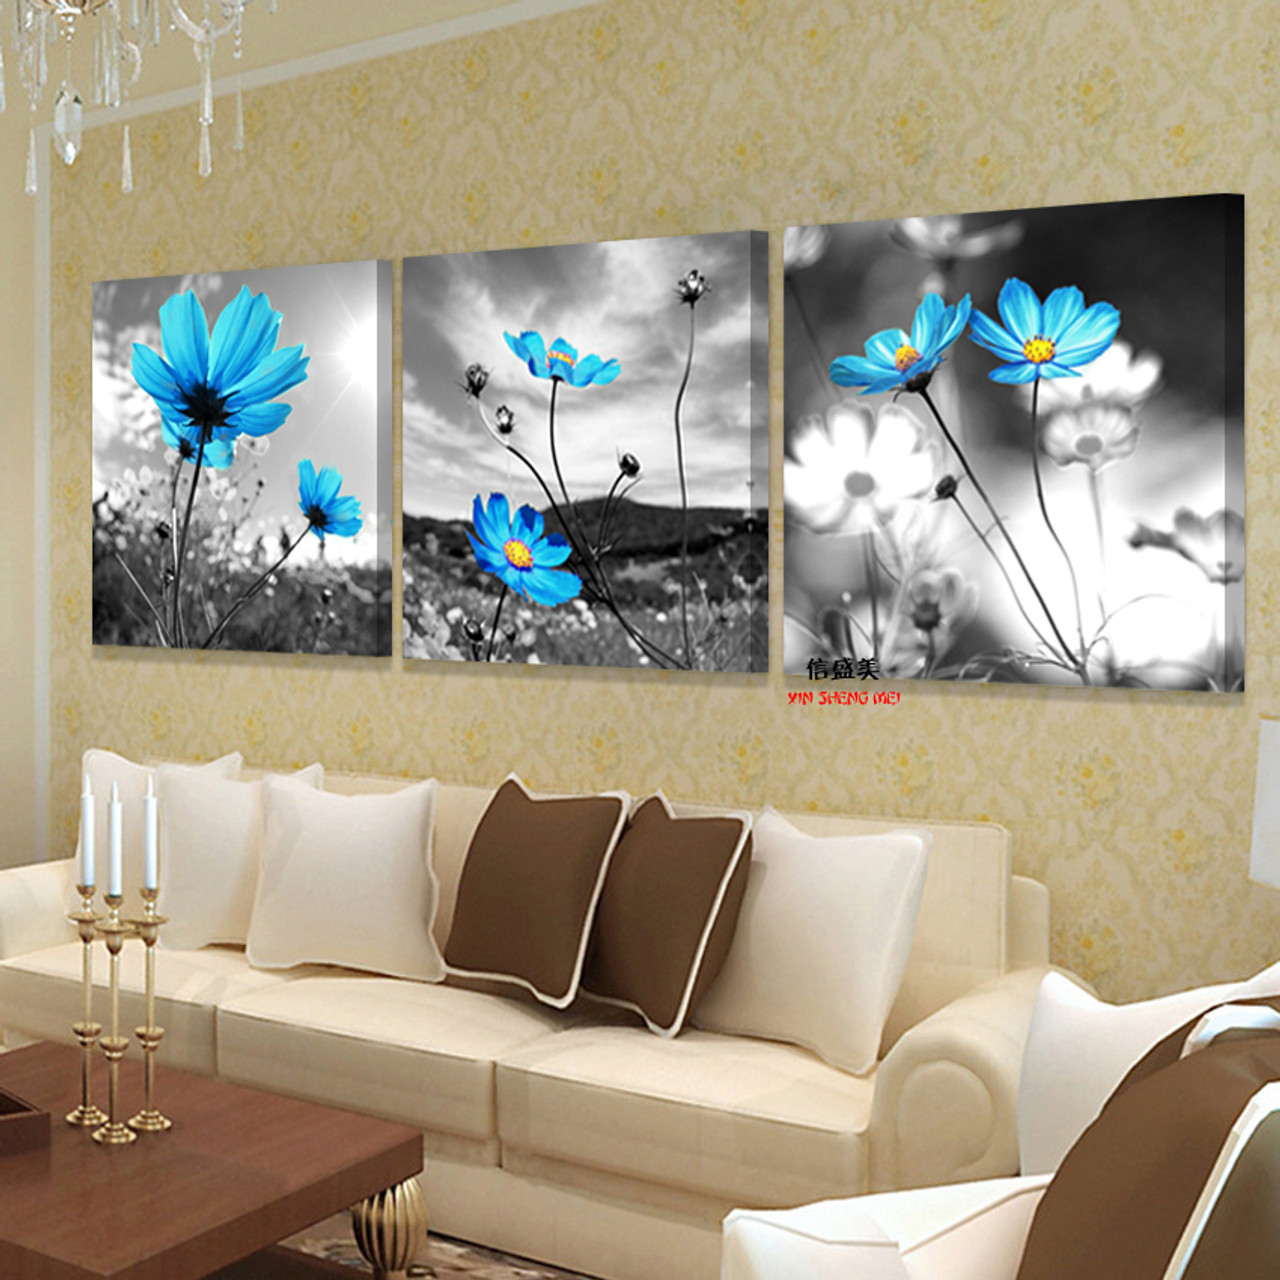 3 Piece Hd Print Canvas Modern Schilderij Flowers Oil Paintings Painting Wall Art Bedroom Cuadros Decoracion ... & 3 Piece Hd Print Canvas Modern Schilderij Flowers Oil Paintings ...